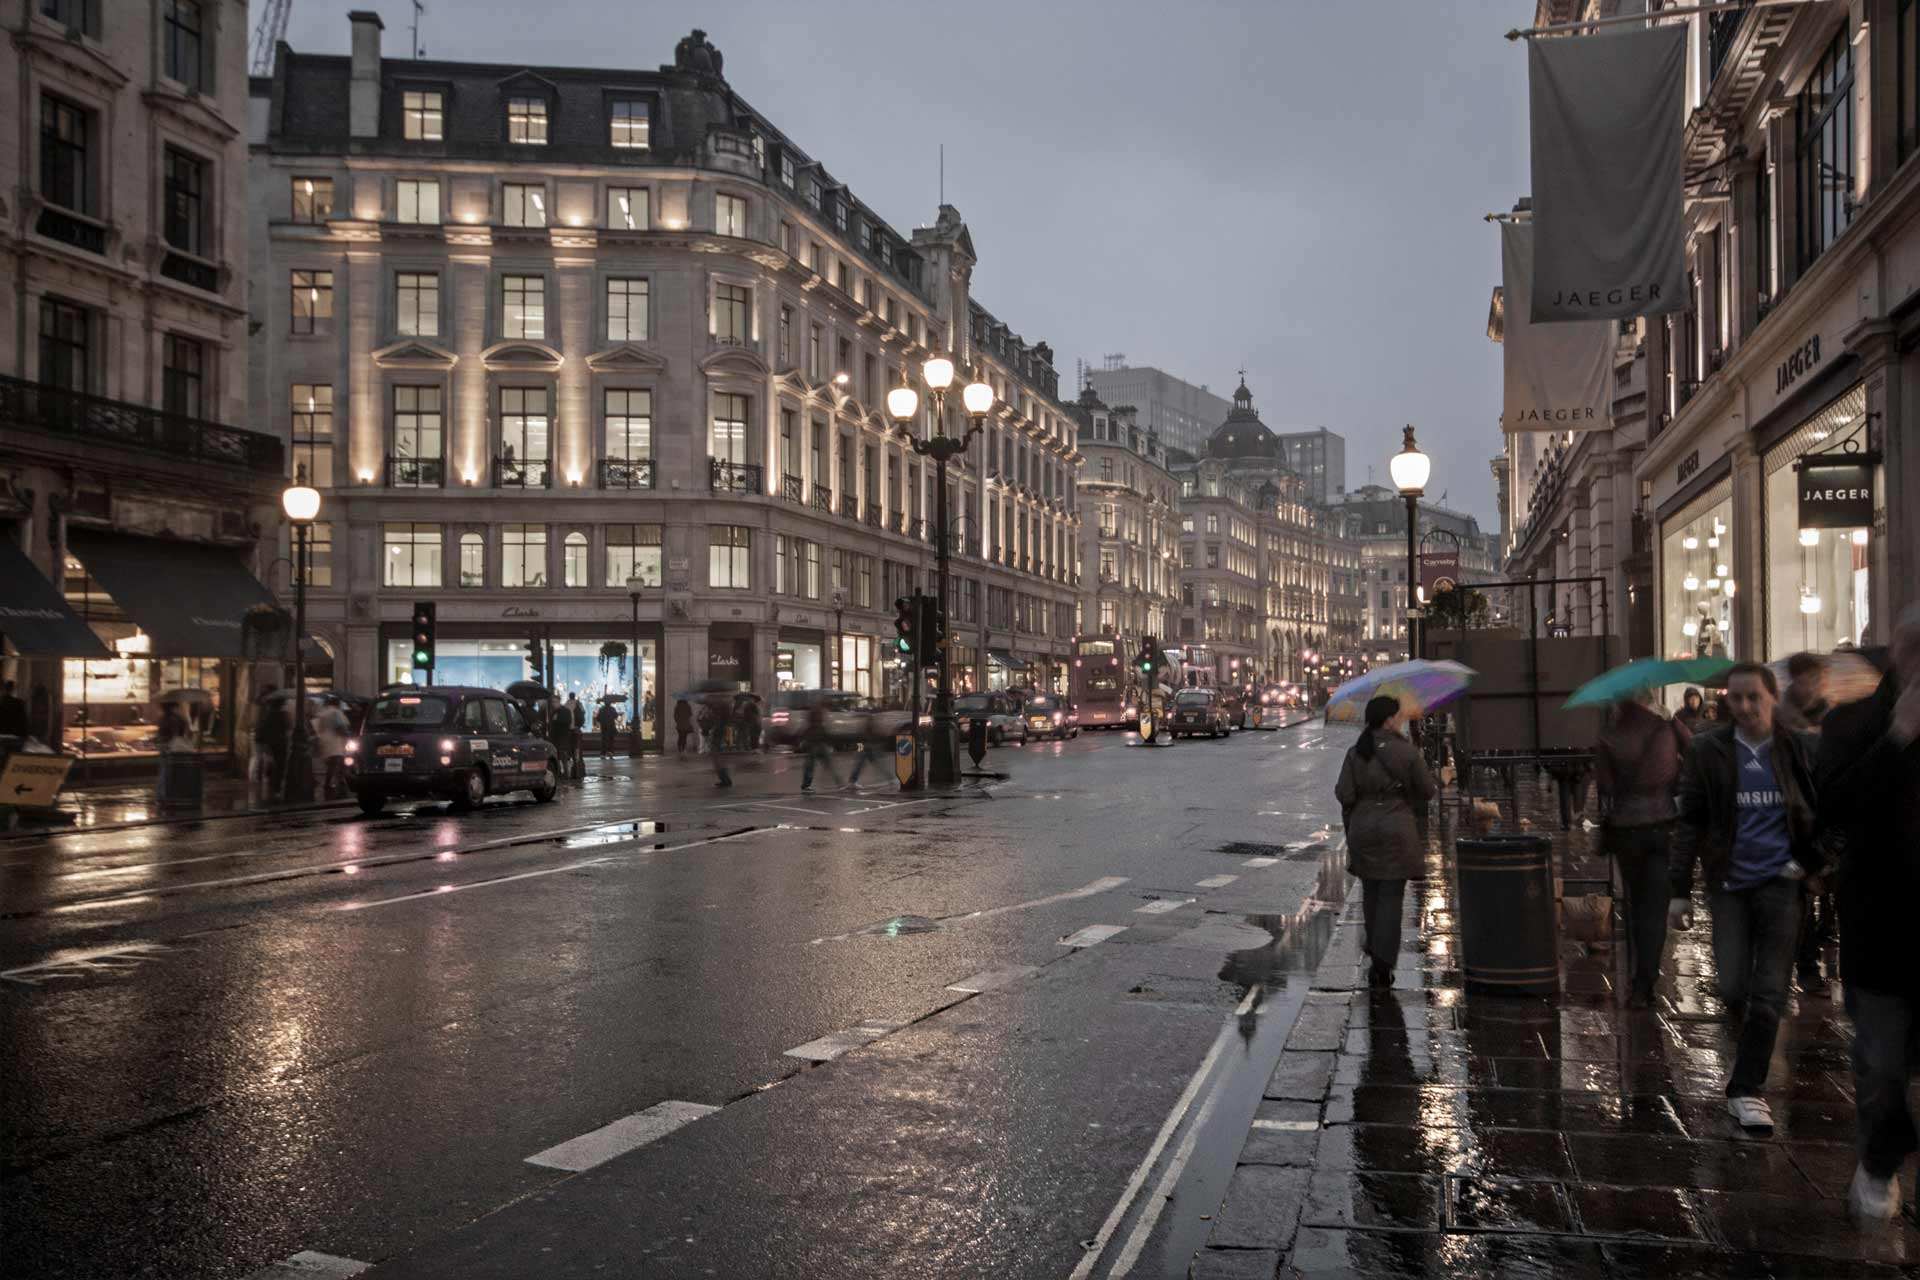 Oxford-street-London-urban-landscapes